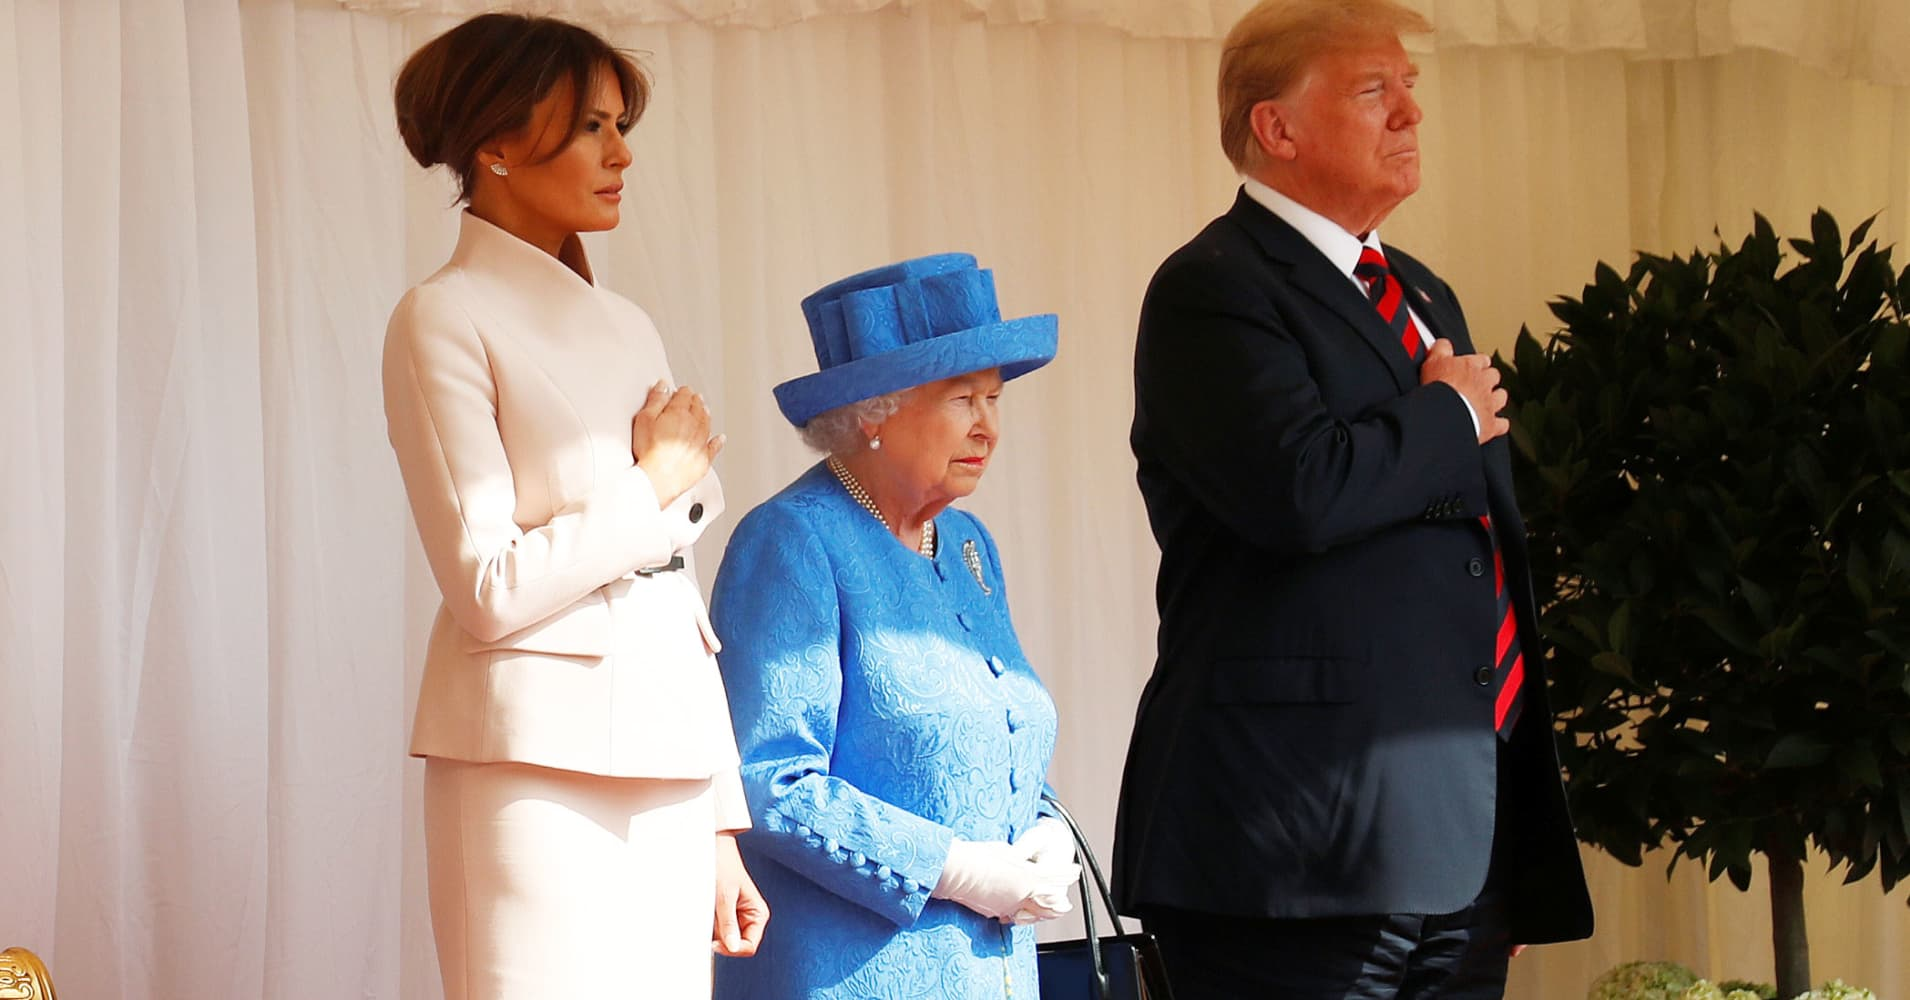 Trump to visit the queen in state visit to the UK